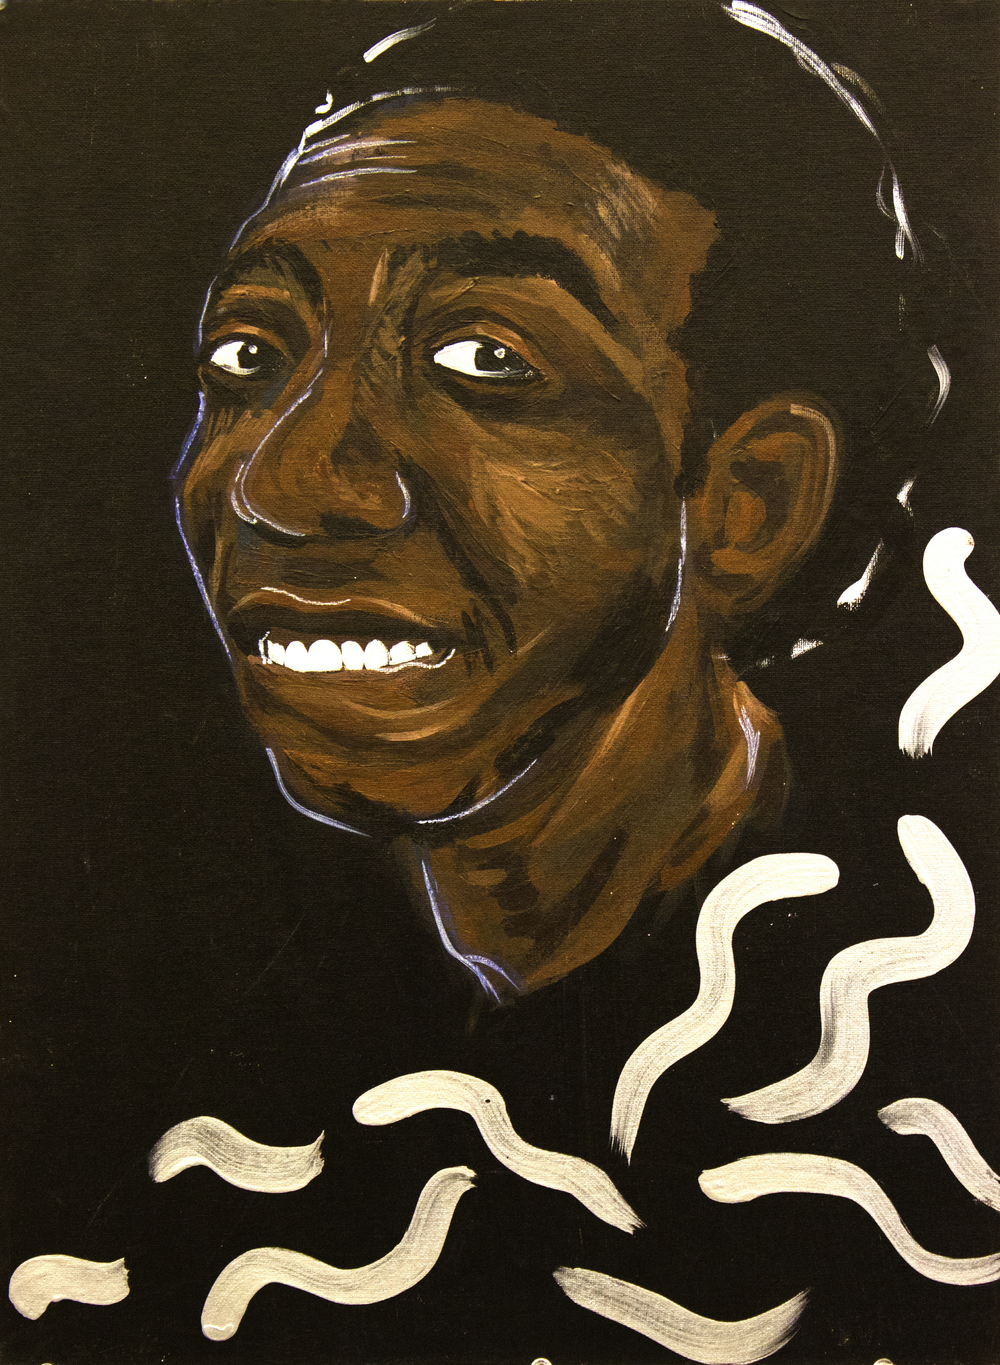 More Than Black (Tyrone)  2012, acrylic on canvas, 18in x 24in